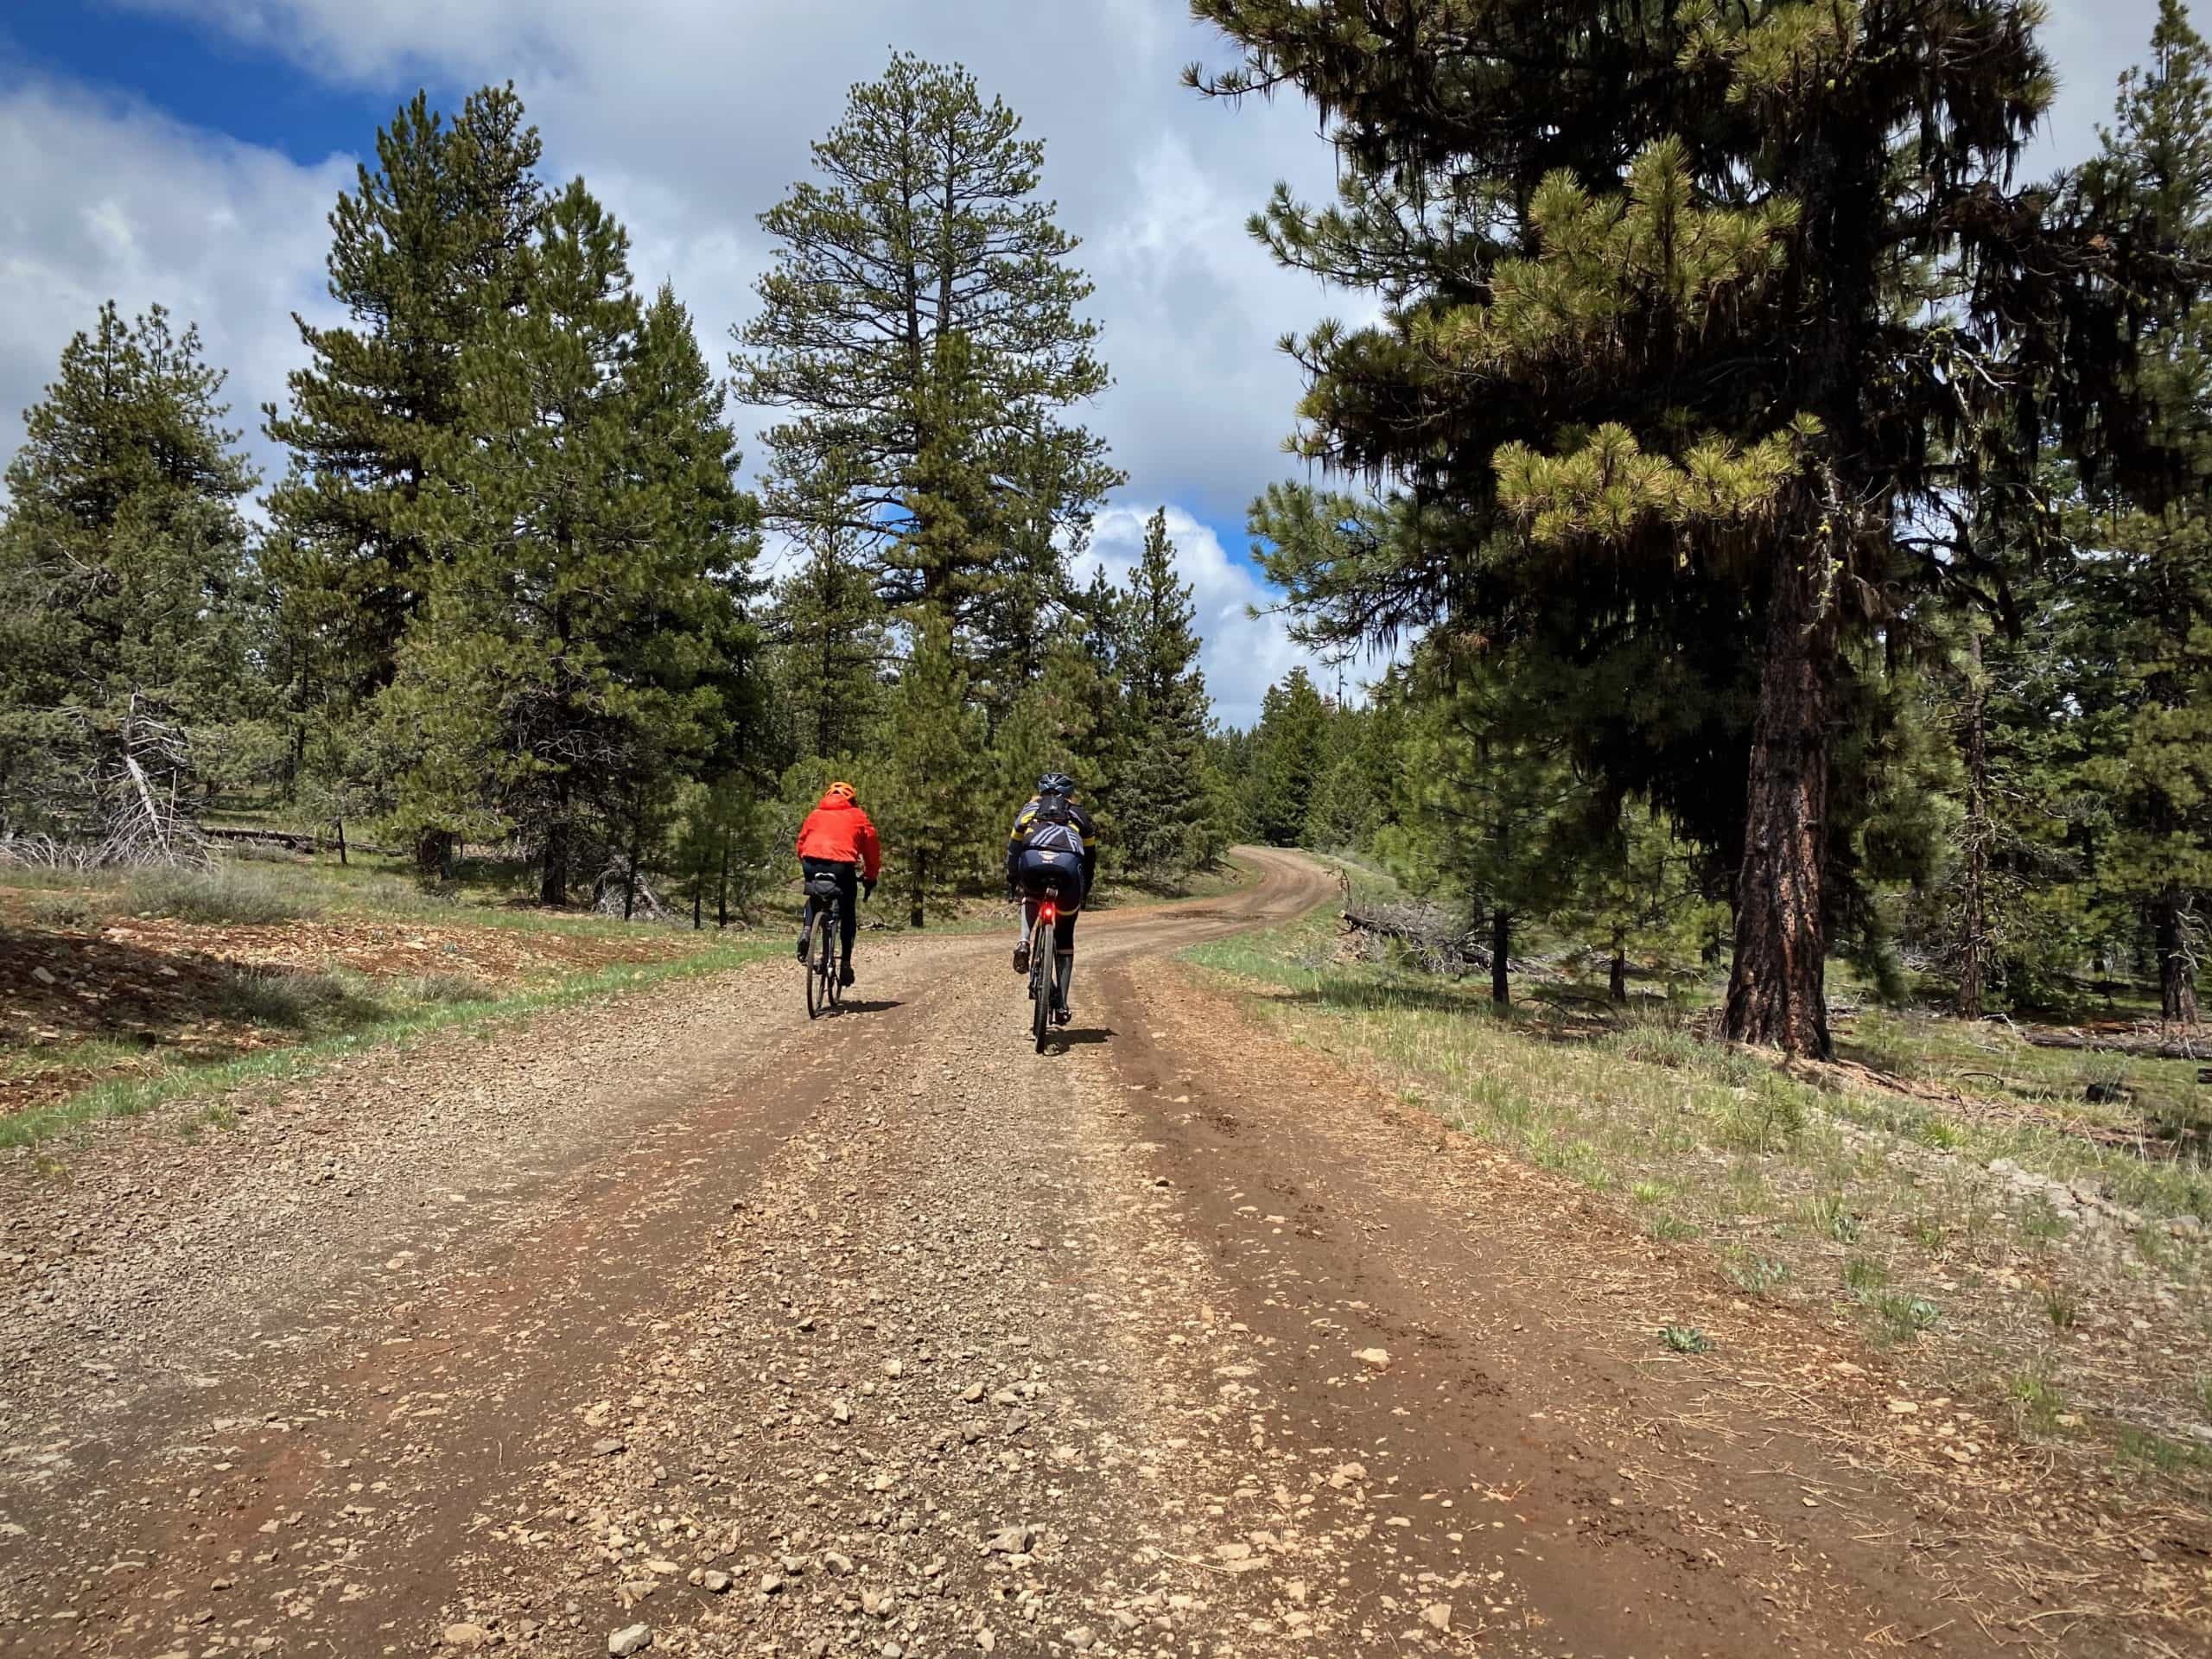 Gravel cyclists on primitive and rough gravel / dirt road in the Ochoco National forest near Mitchell, OR.